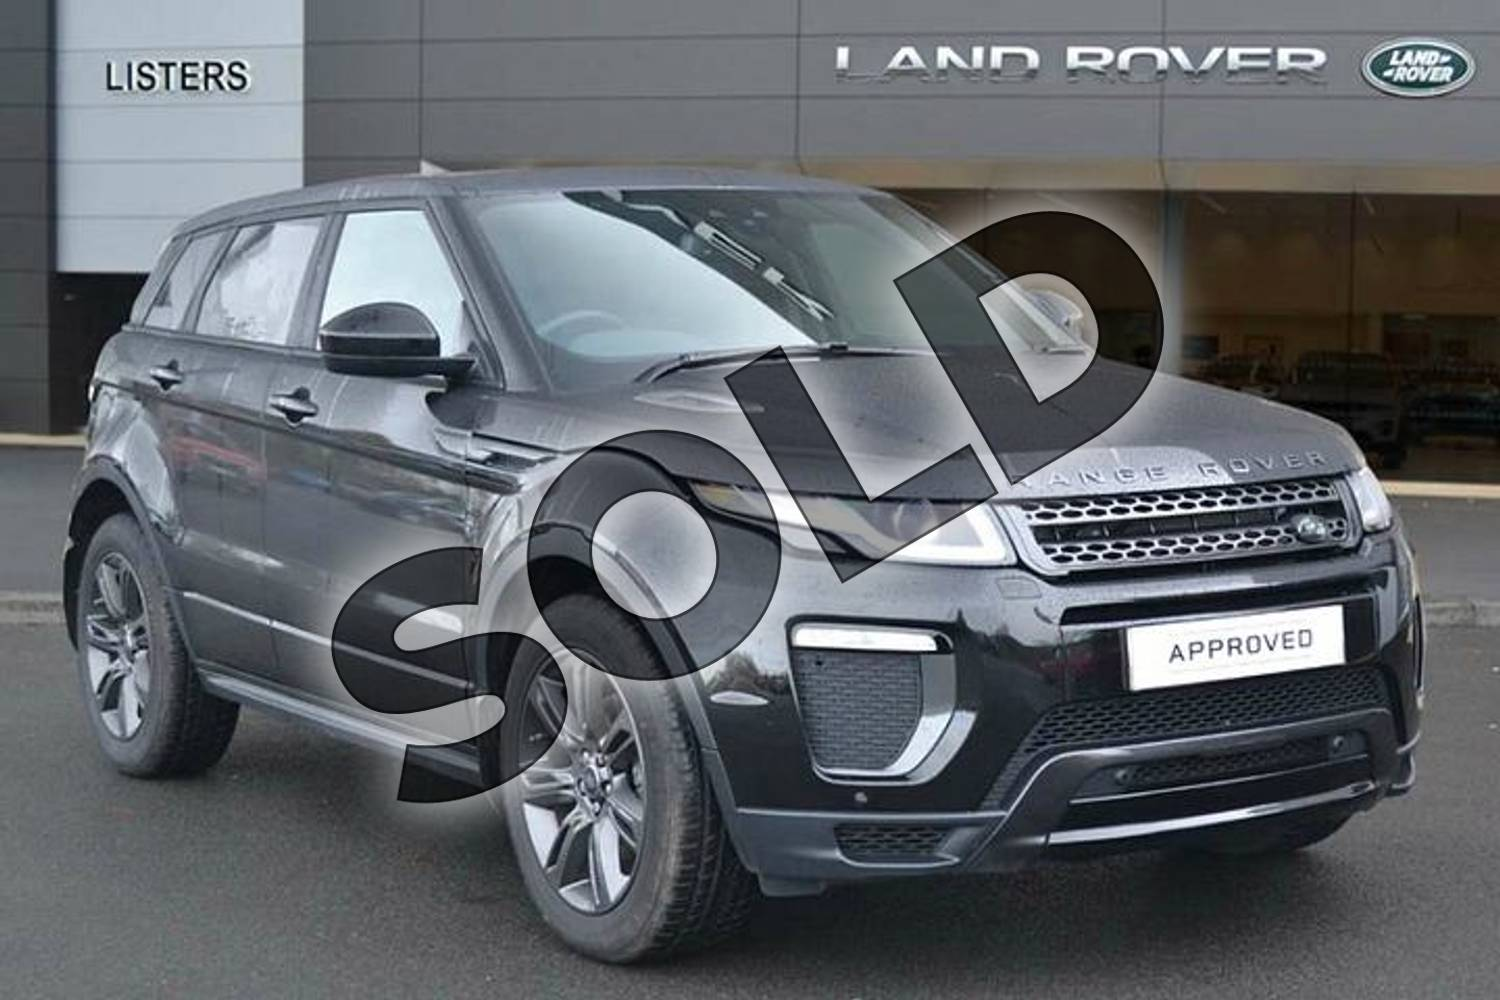 2018 Range Rover Evoque Hatchback Special Edition Special Edition 2.0 TD4 Landmark 5dr in Santorini Black at Listers Land Rover Hereford